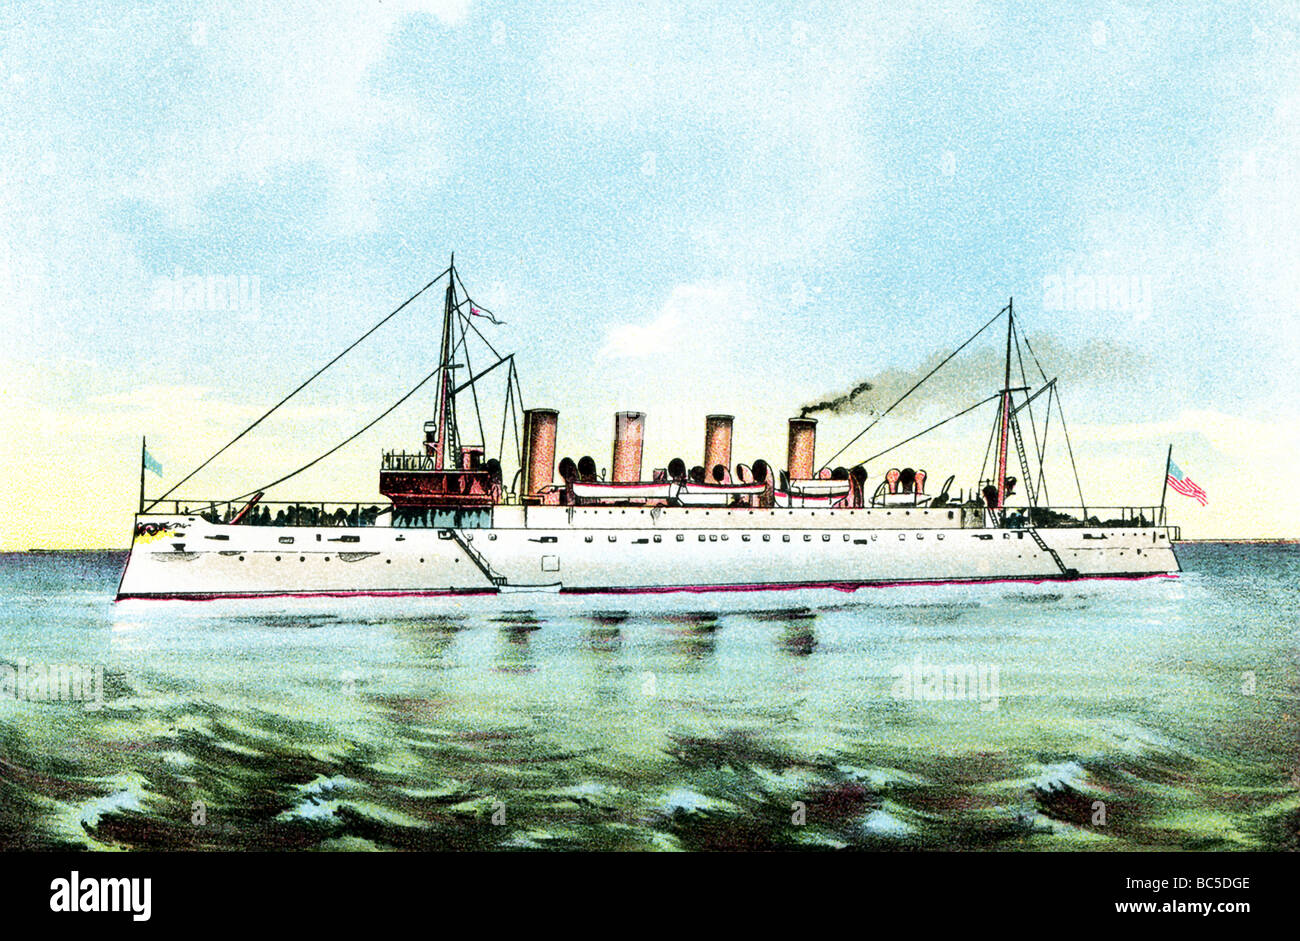 USS Cruiser Columbia, launched in 1892, built as cmmerce raider and conveyed troops in Spanish American War in 1898. - Stock Image